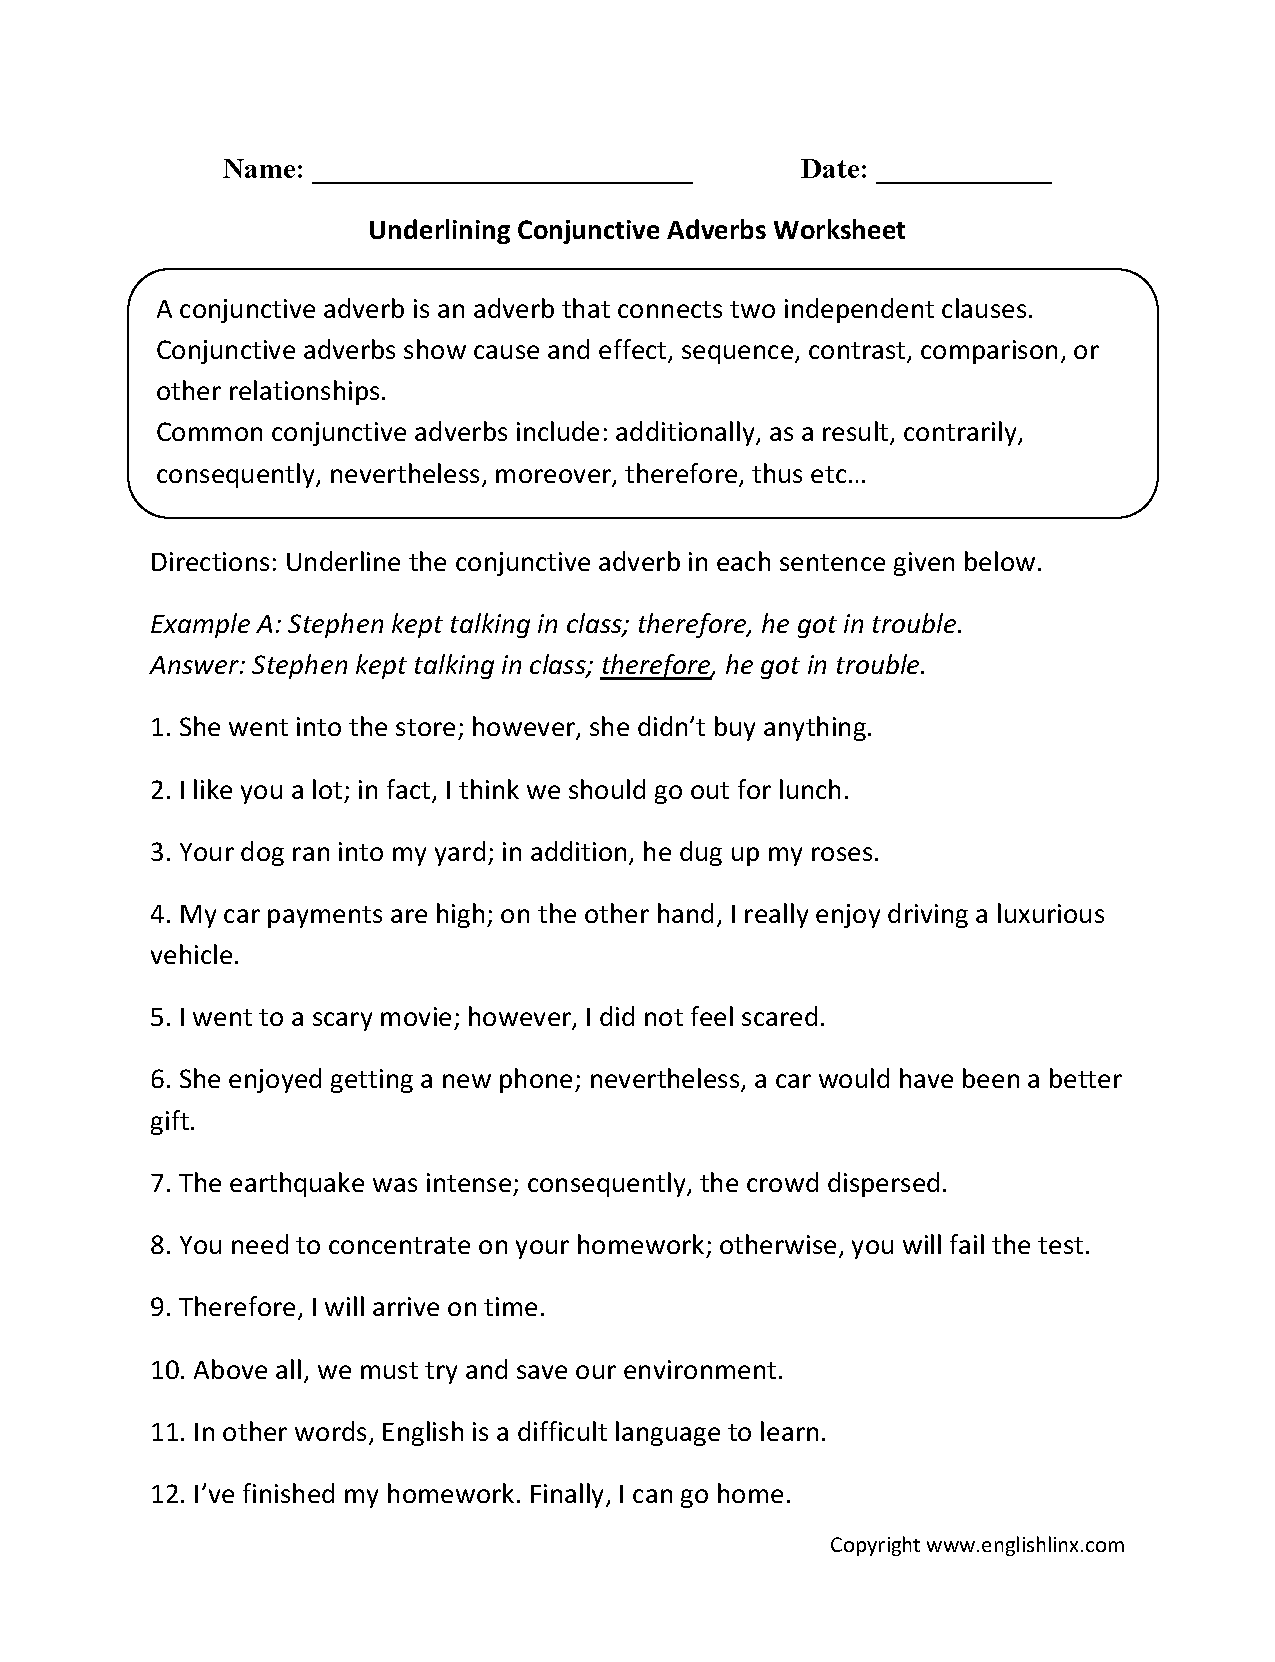 Weirdmailus  Seductive Englishlinxcom  Conjunctions Worksheets With Interesting Worksheet With Amazing Gallon Conversion Worksheet Also Erosion Worksheets Th Grade In Addition Primary Color Worksheets And Self Reflection Worksheets As Well As Common Proper Noun Worksheet Additionally Parts Of An Airplane Worksheet From Englishlinxcom With Weirdmailus  Interesting Englishlinxcom  Conjunctions Worksheets With Amazing Worksheet And Seductive Gallon Conversion Worksheet Also Erosion Worksheets Th Grade In Addition Primary Color Worksheets From Englishlinxcom